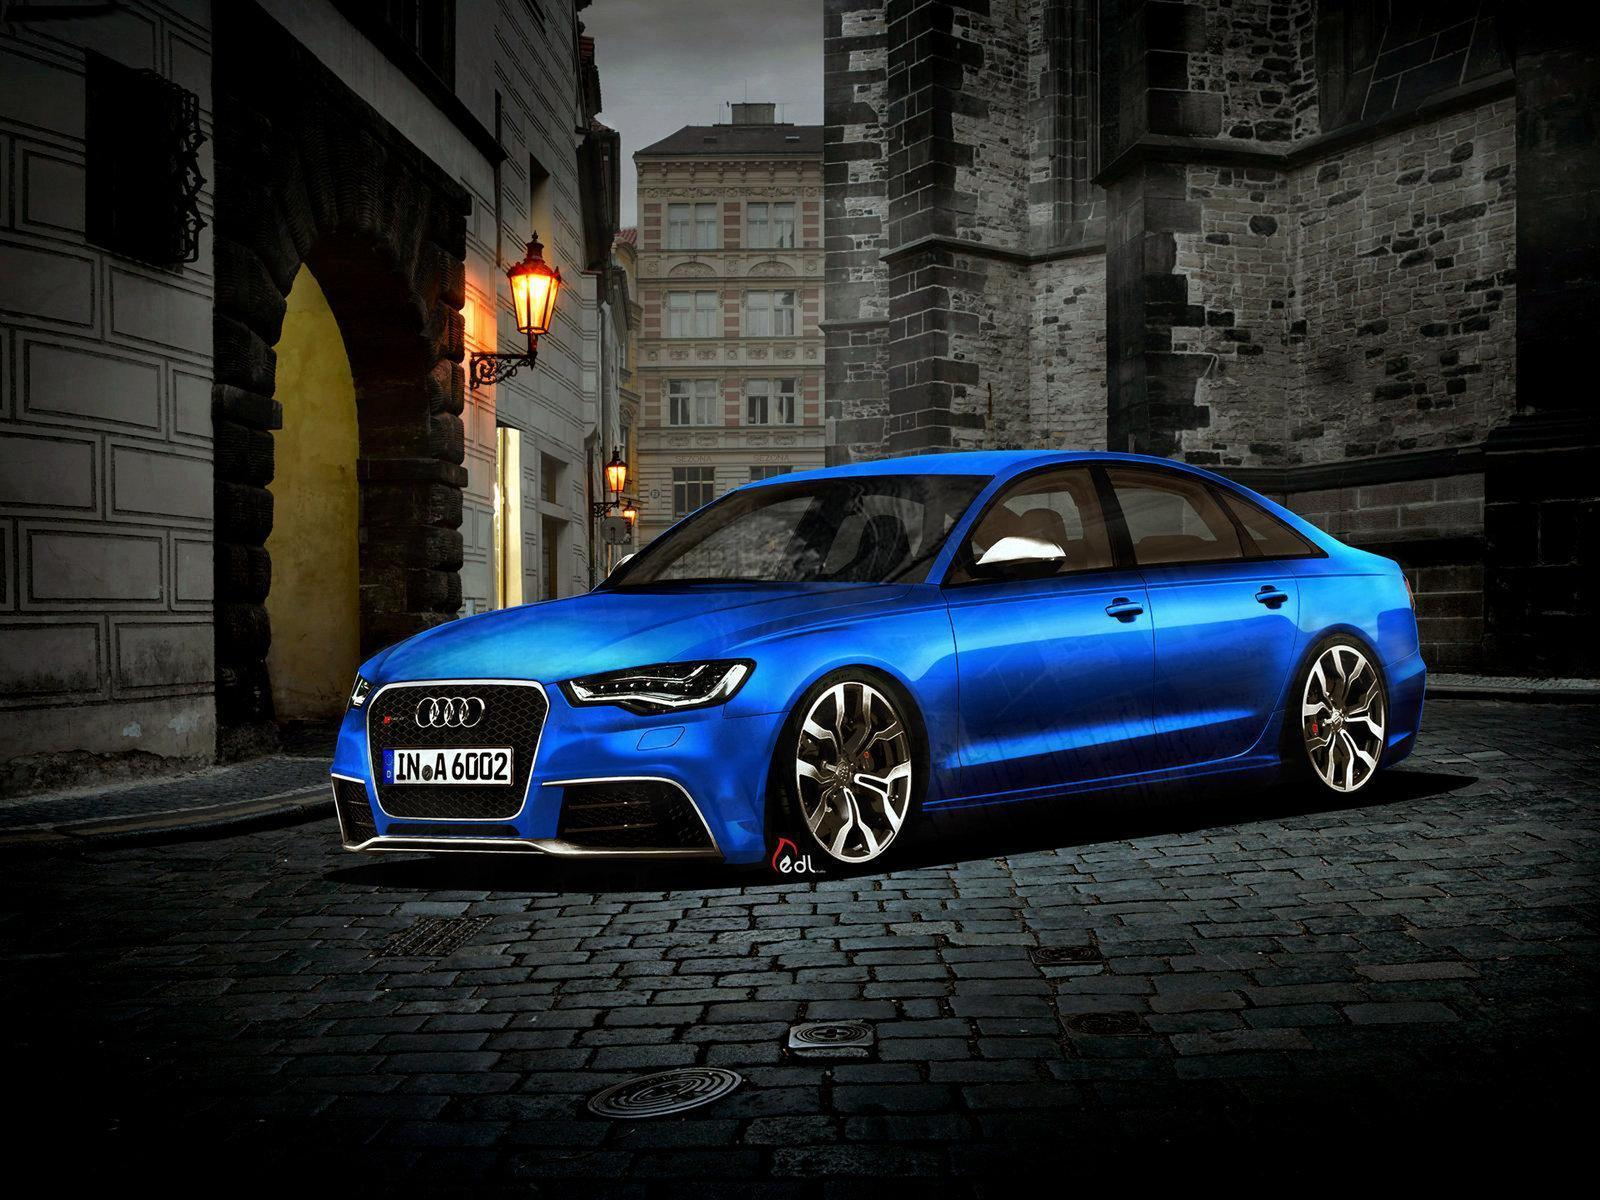 Audi RS 6 Wallpapers, 45 High Quality Audi RS 6 Wallpapers